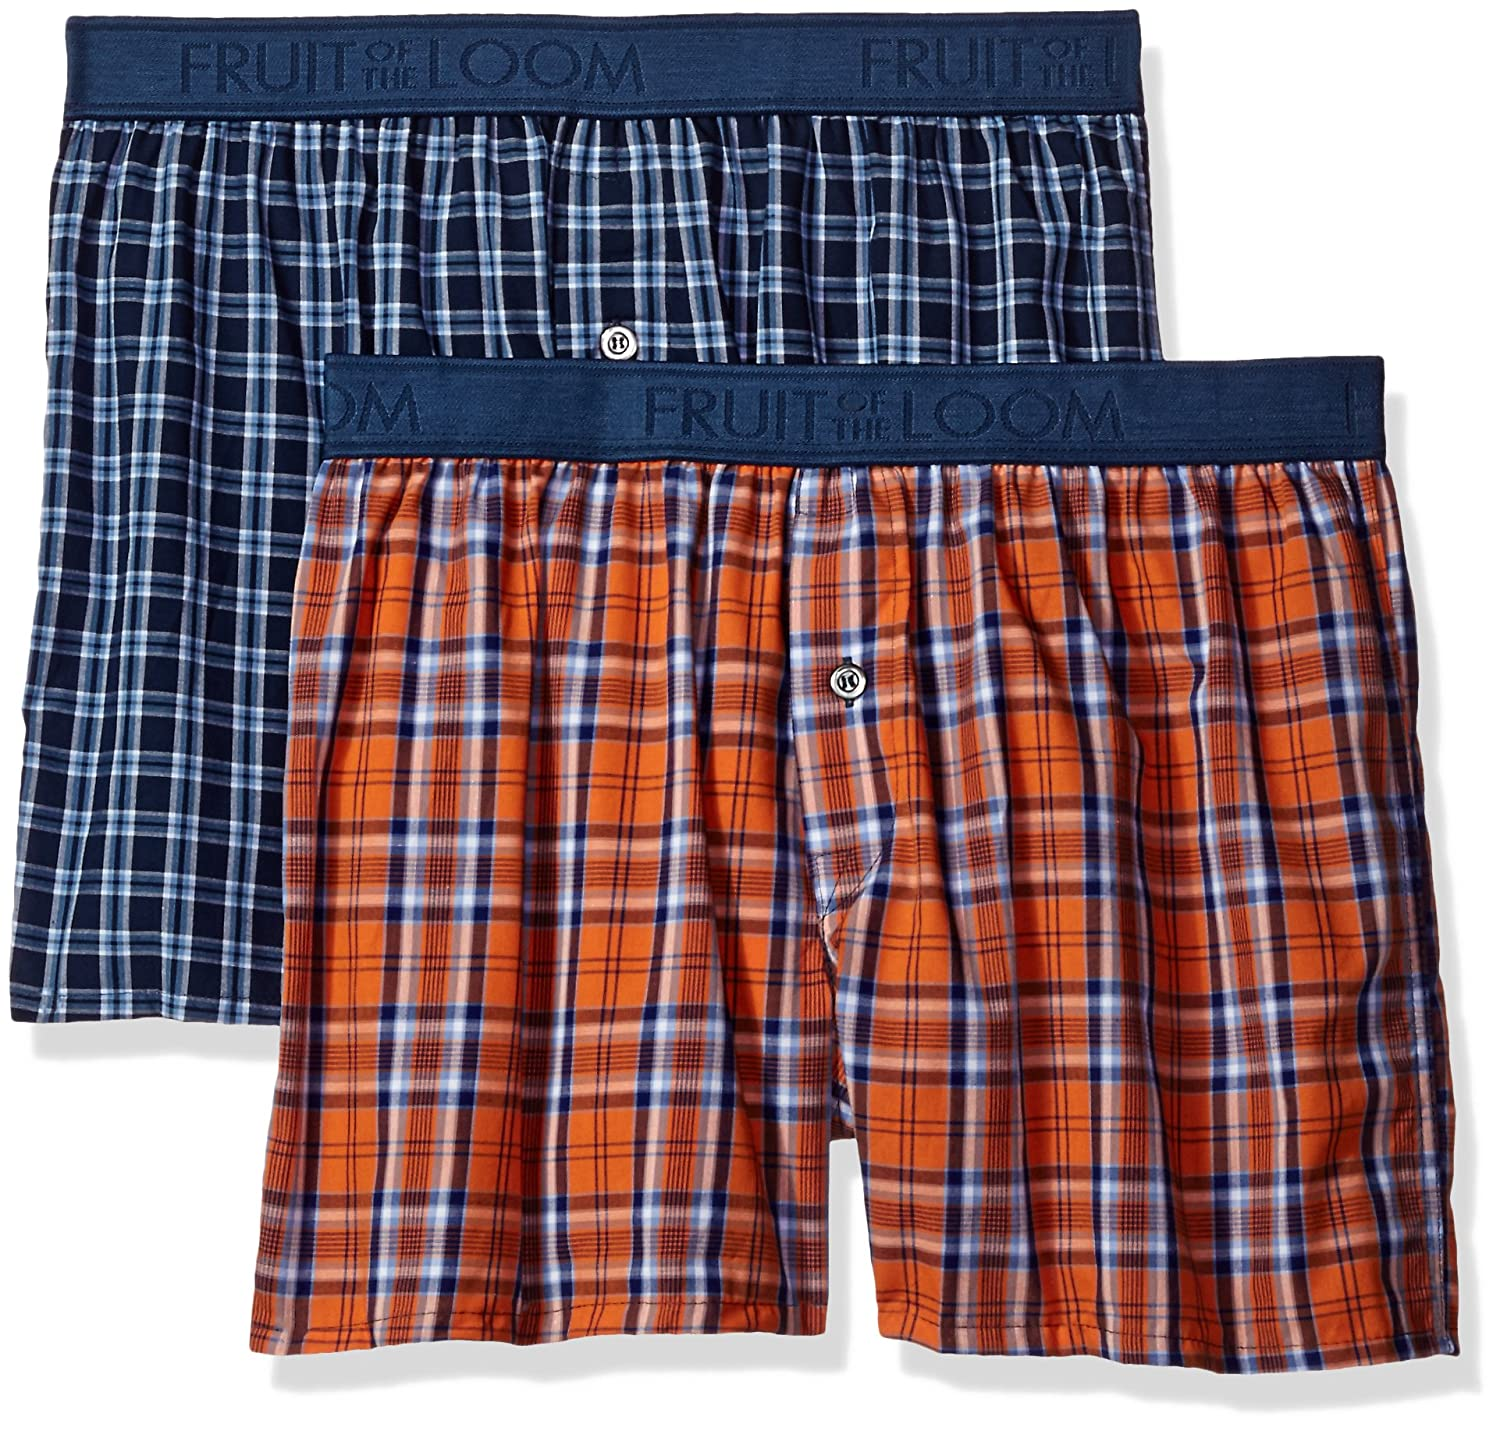 Fruit of the Loom Men's Cotton Stretch Boxer (Pack of 2) 2P550L2